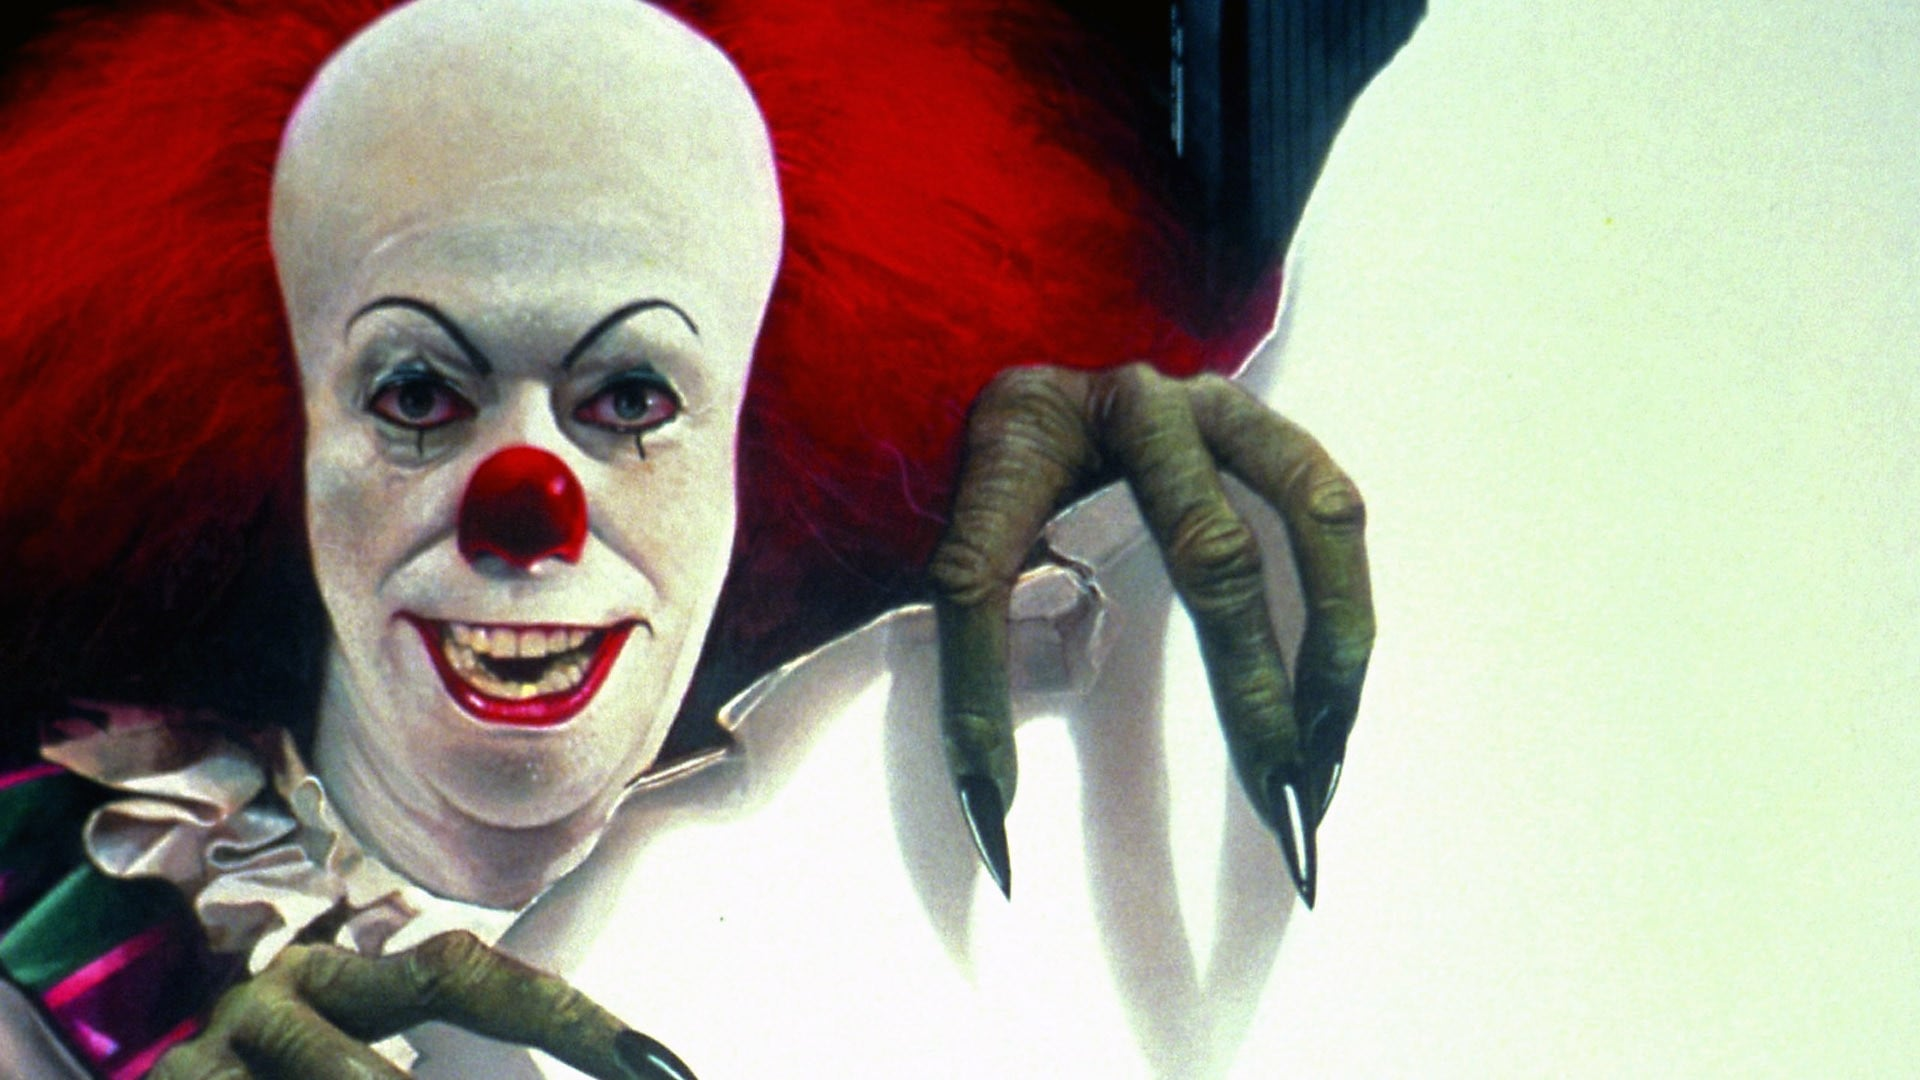 Pennywise The Clown 1990wallpaper: Stephen King's It (1990) • Movies.film-cine.com